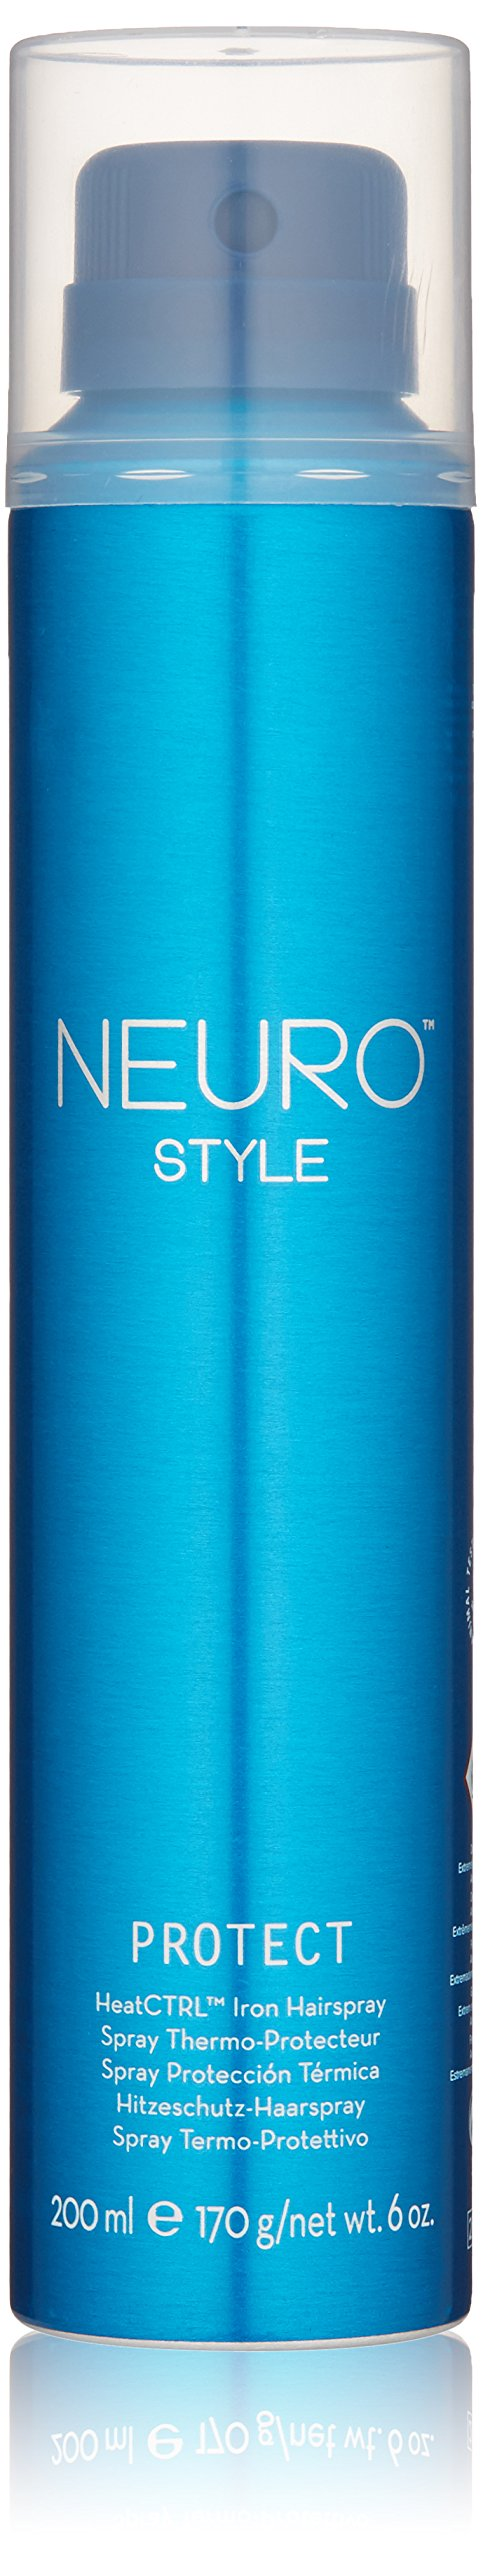 Neuro Protect Thermal Protection Spray